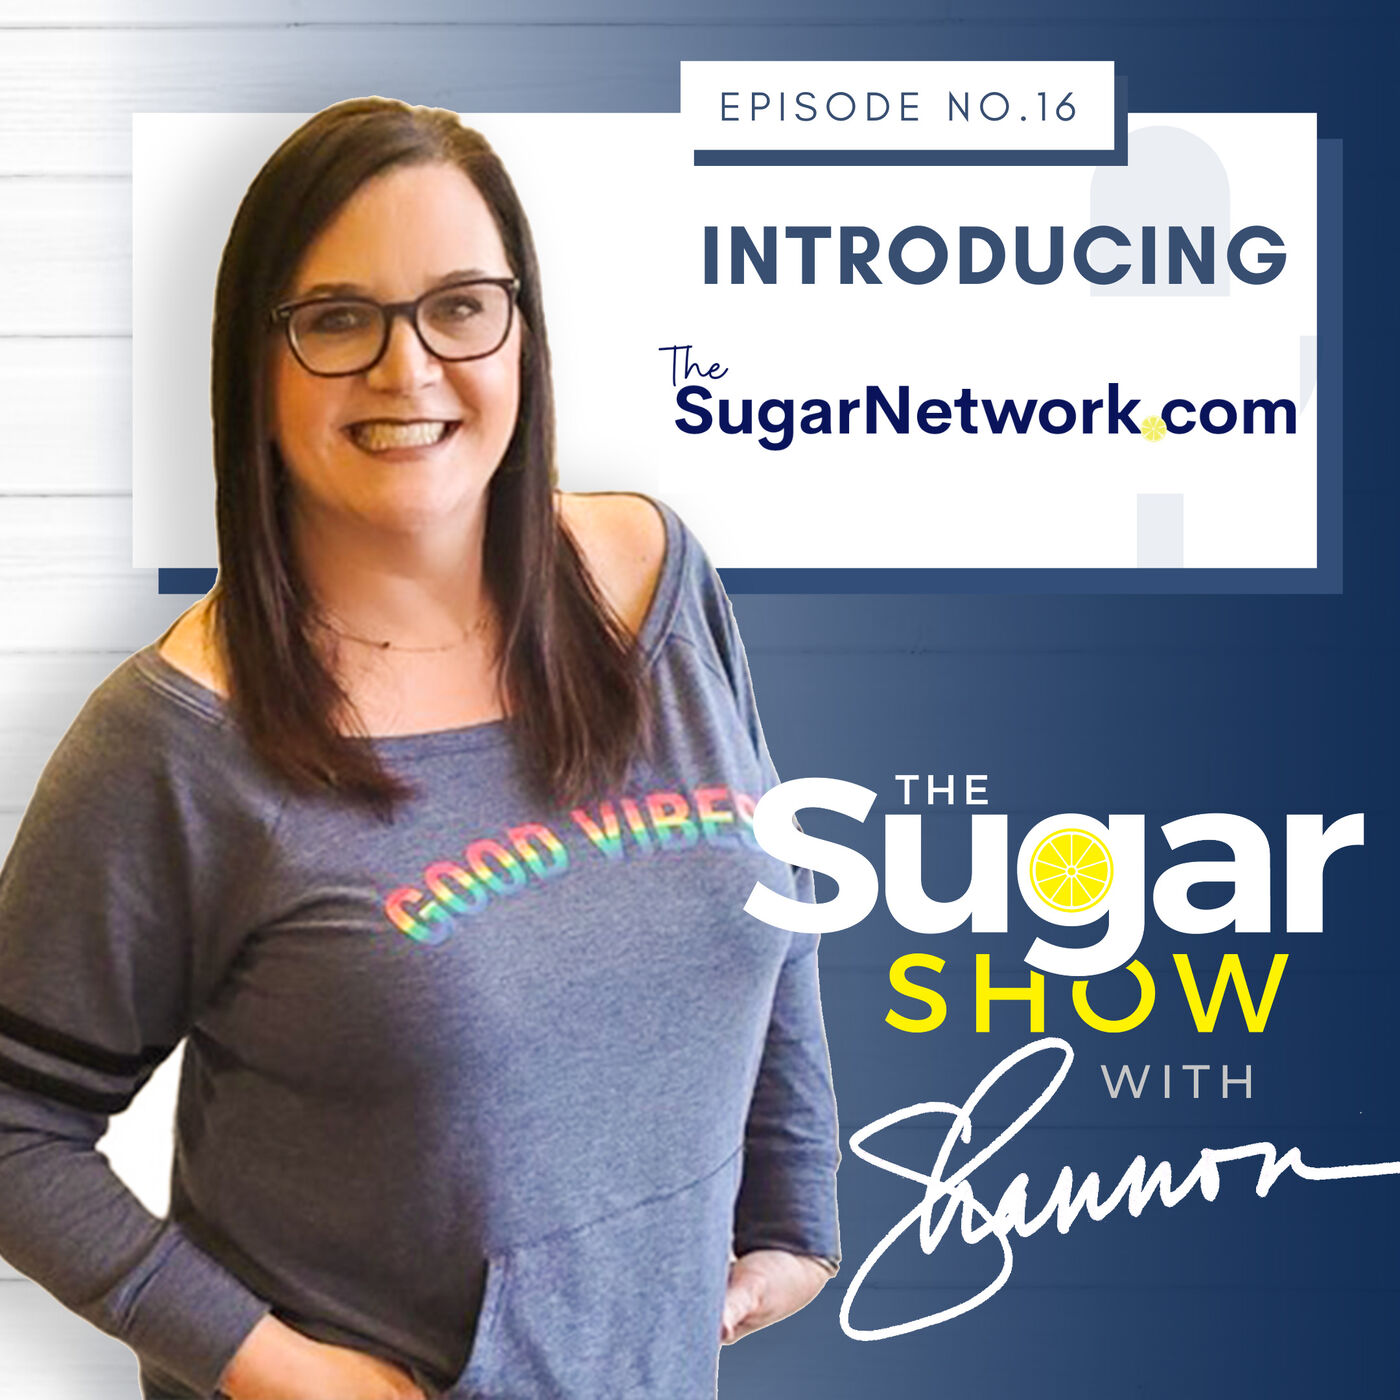 The SugarShow S2E16: Announcing The SugarNetwork ! with your Host Shannon, the SugarMama